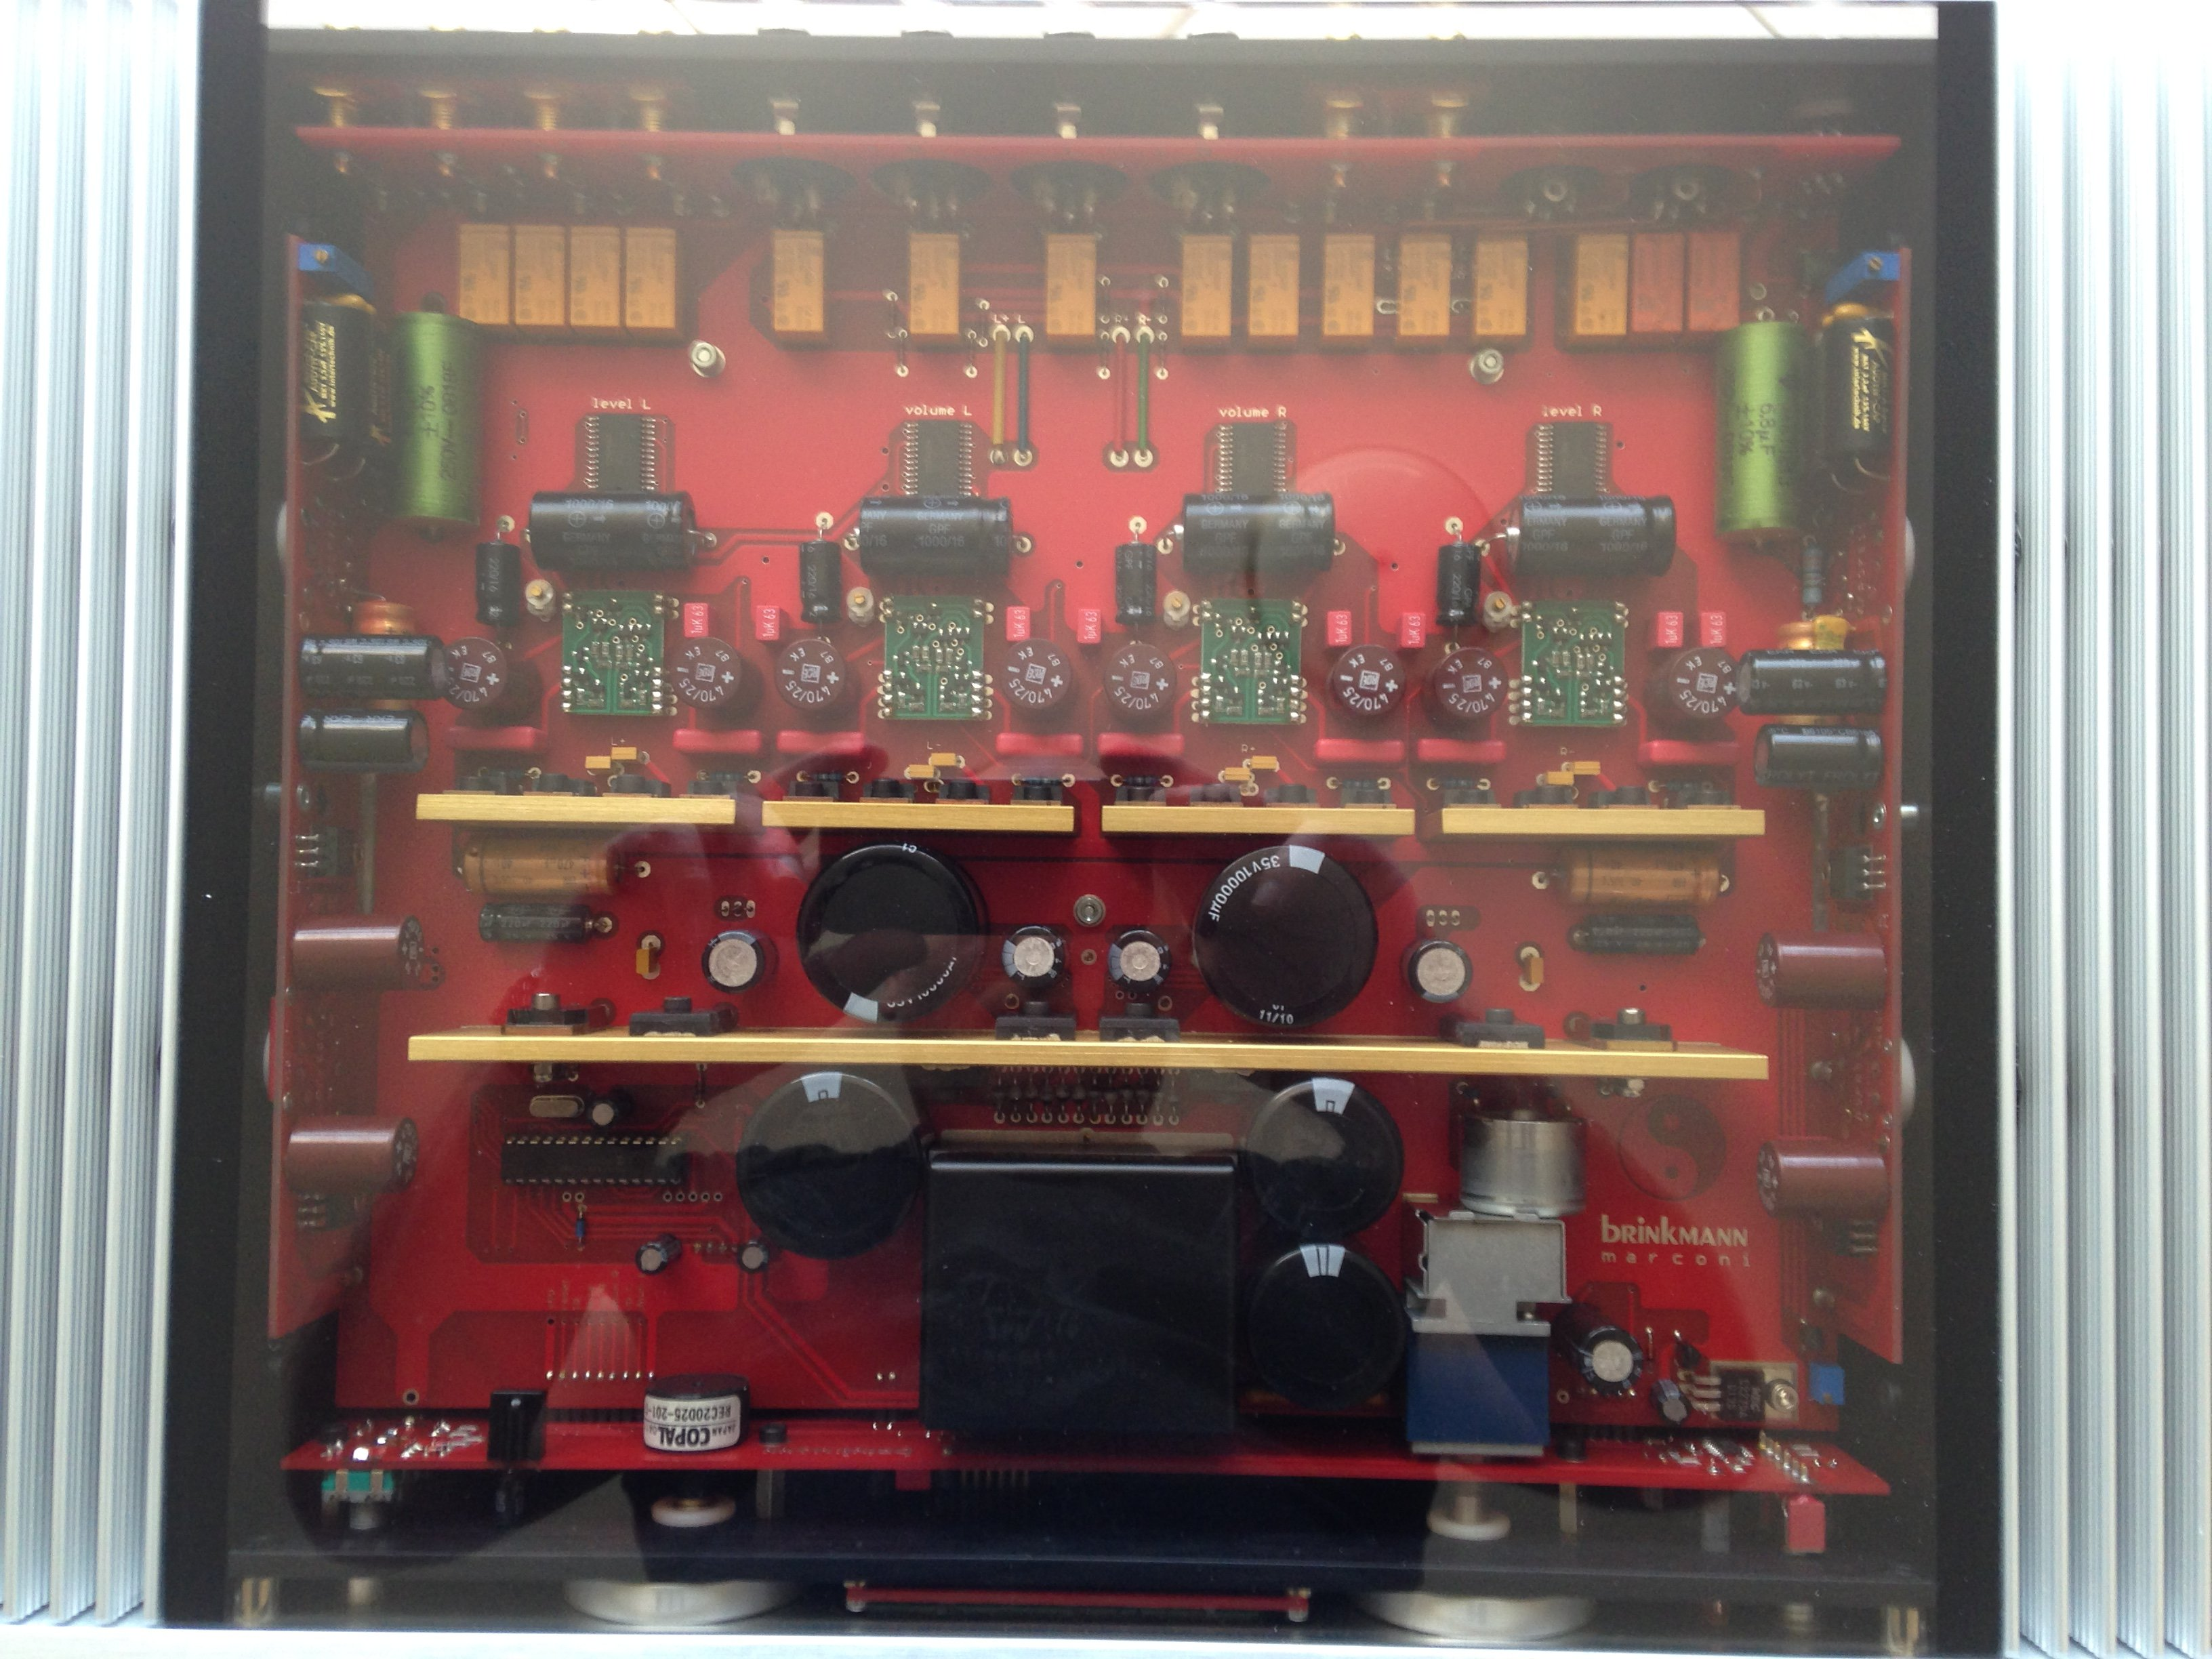 Sold Brinkmann Marconi Linestage Classifieds Audio Stereonet Line Highend Preamplifier With Ics Img 0232